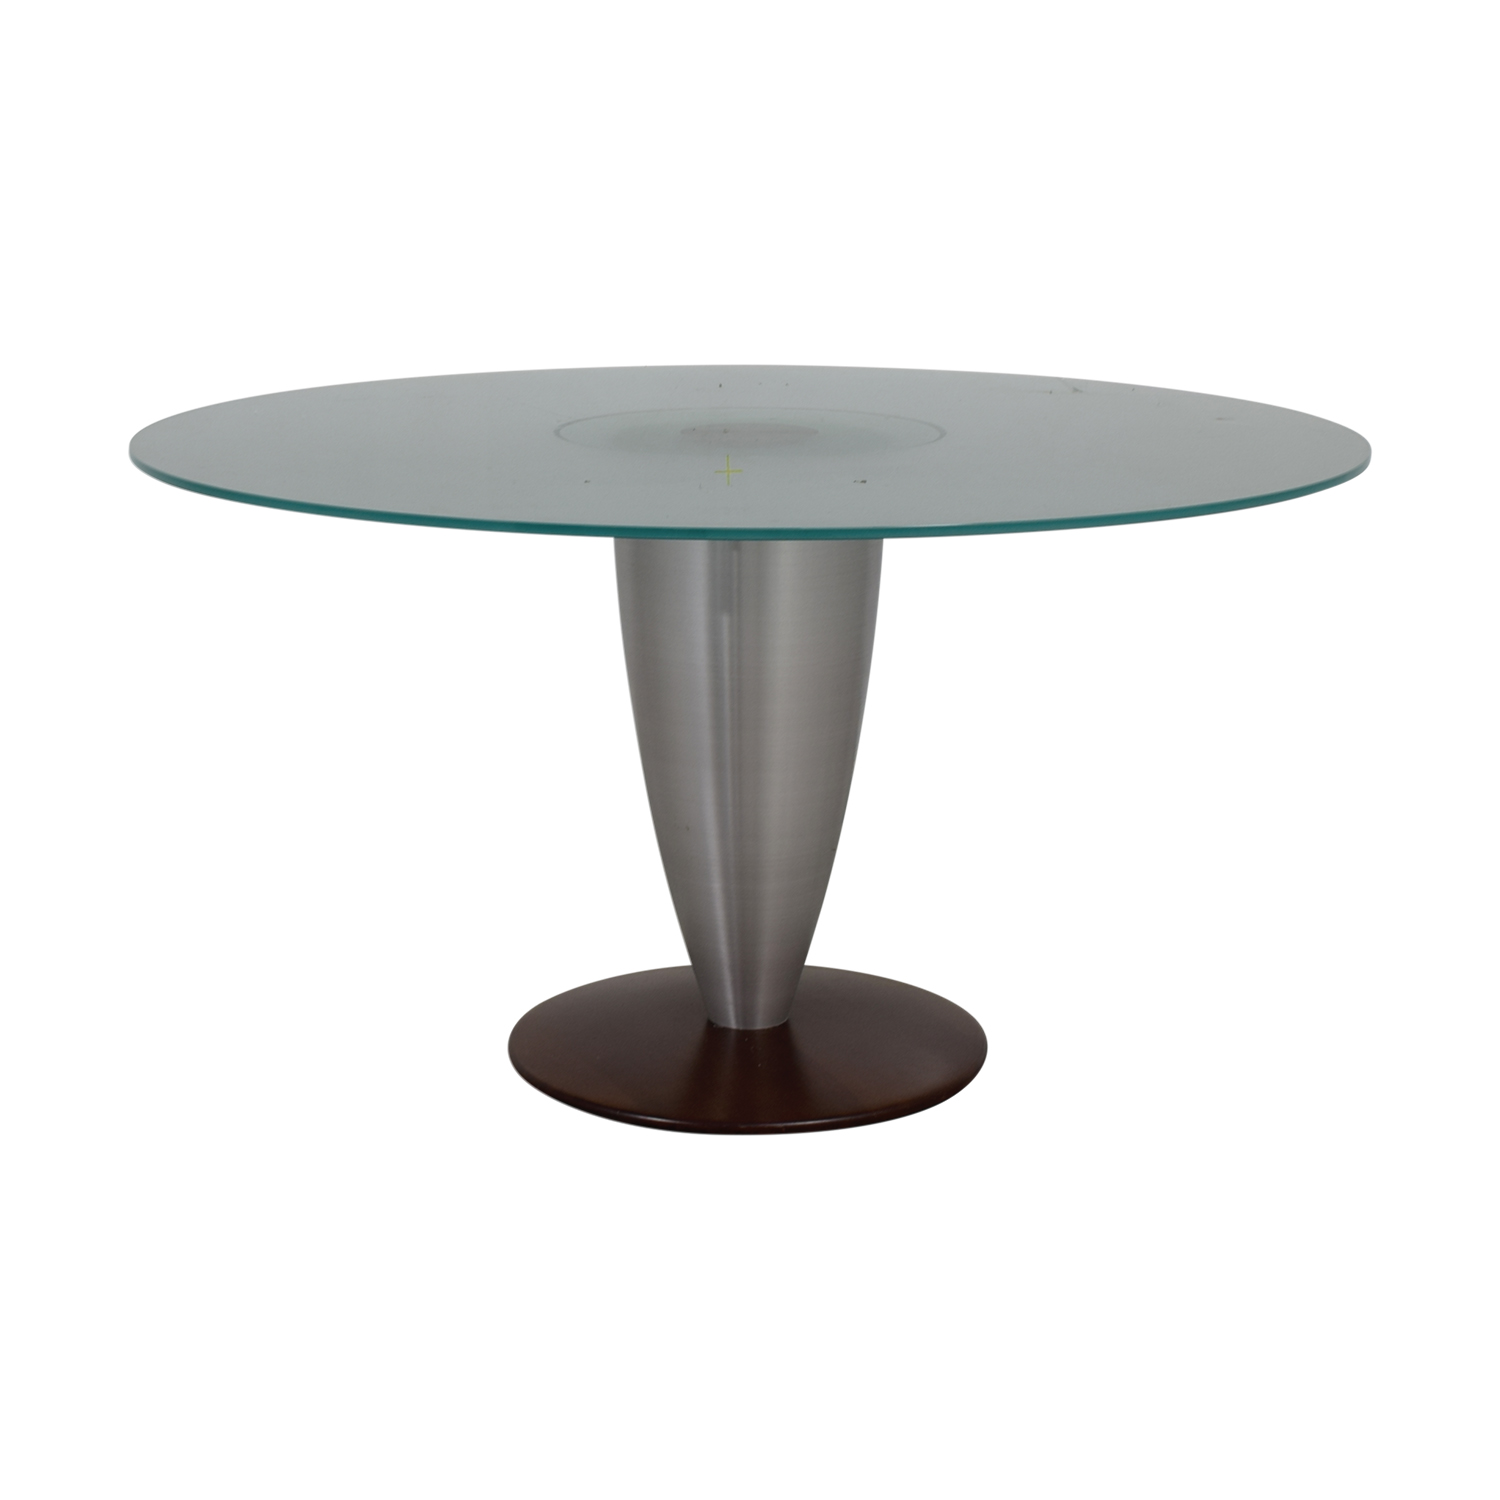 Design Studio Round Glass Dining Table nj